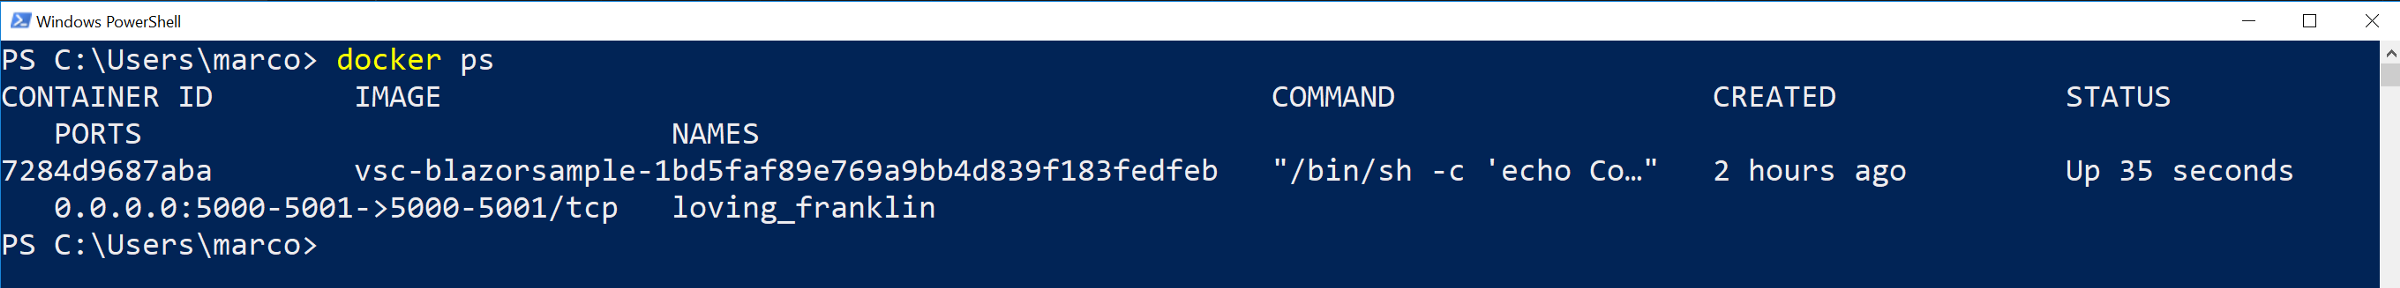 A'docker ps'command showing the running container we are currently using.